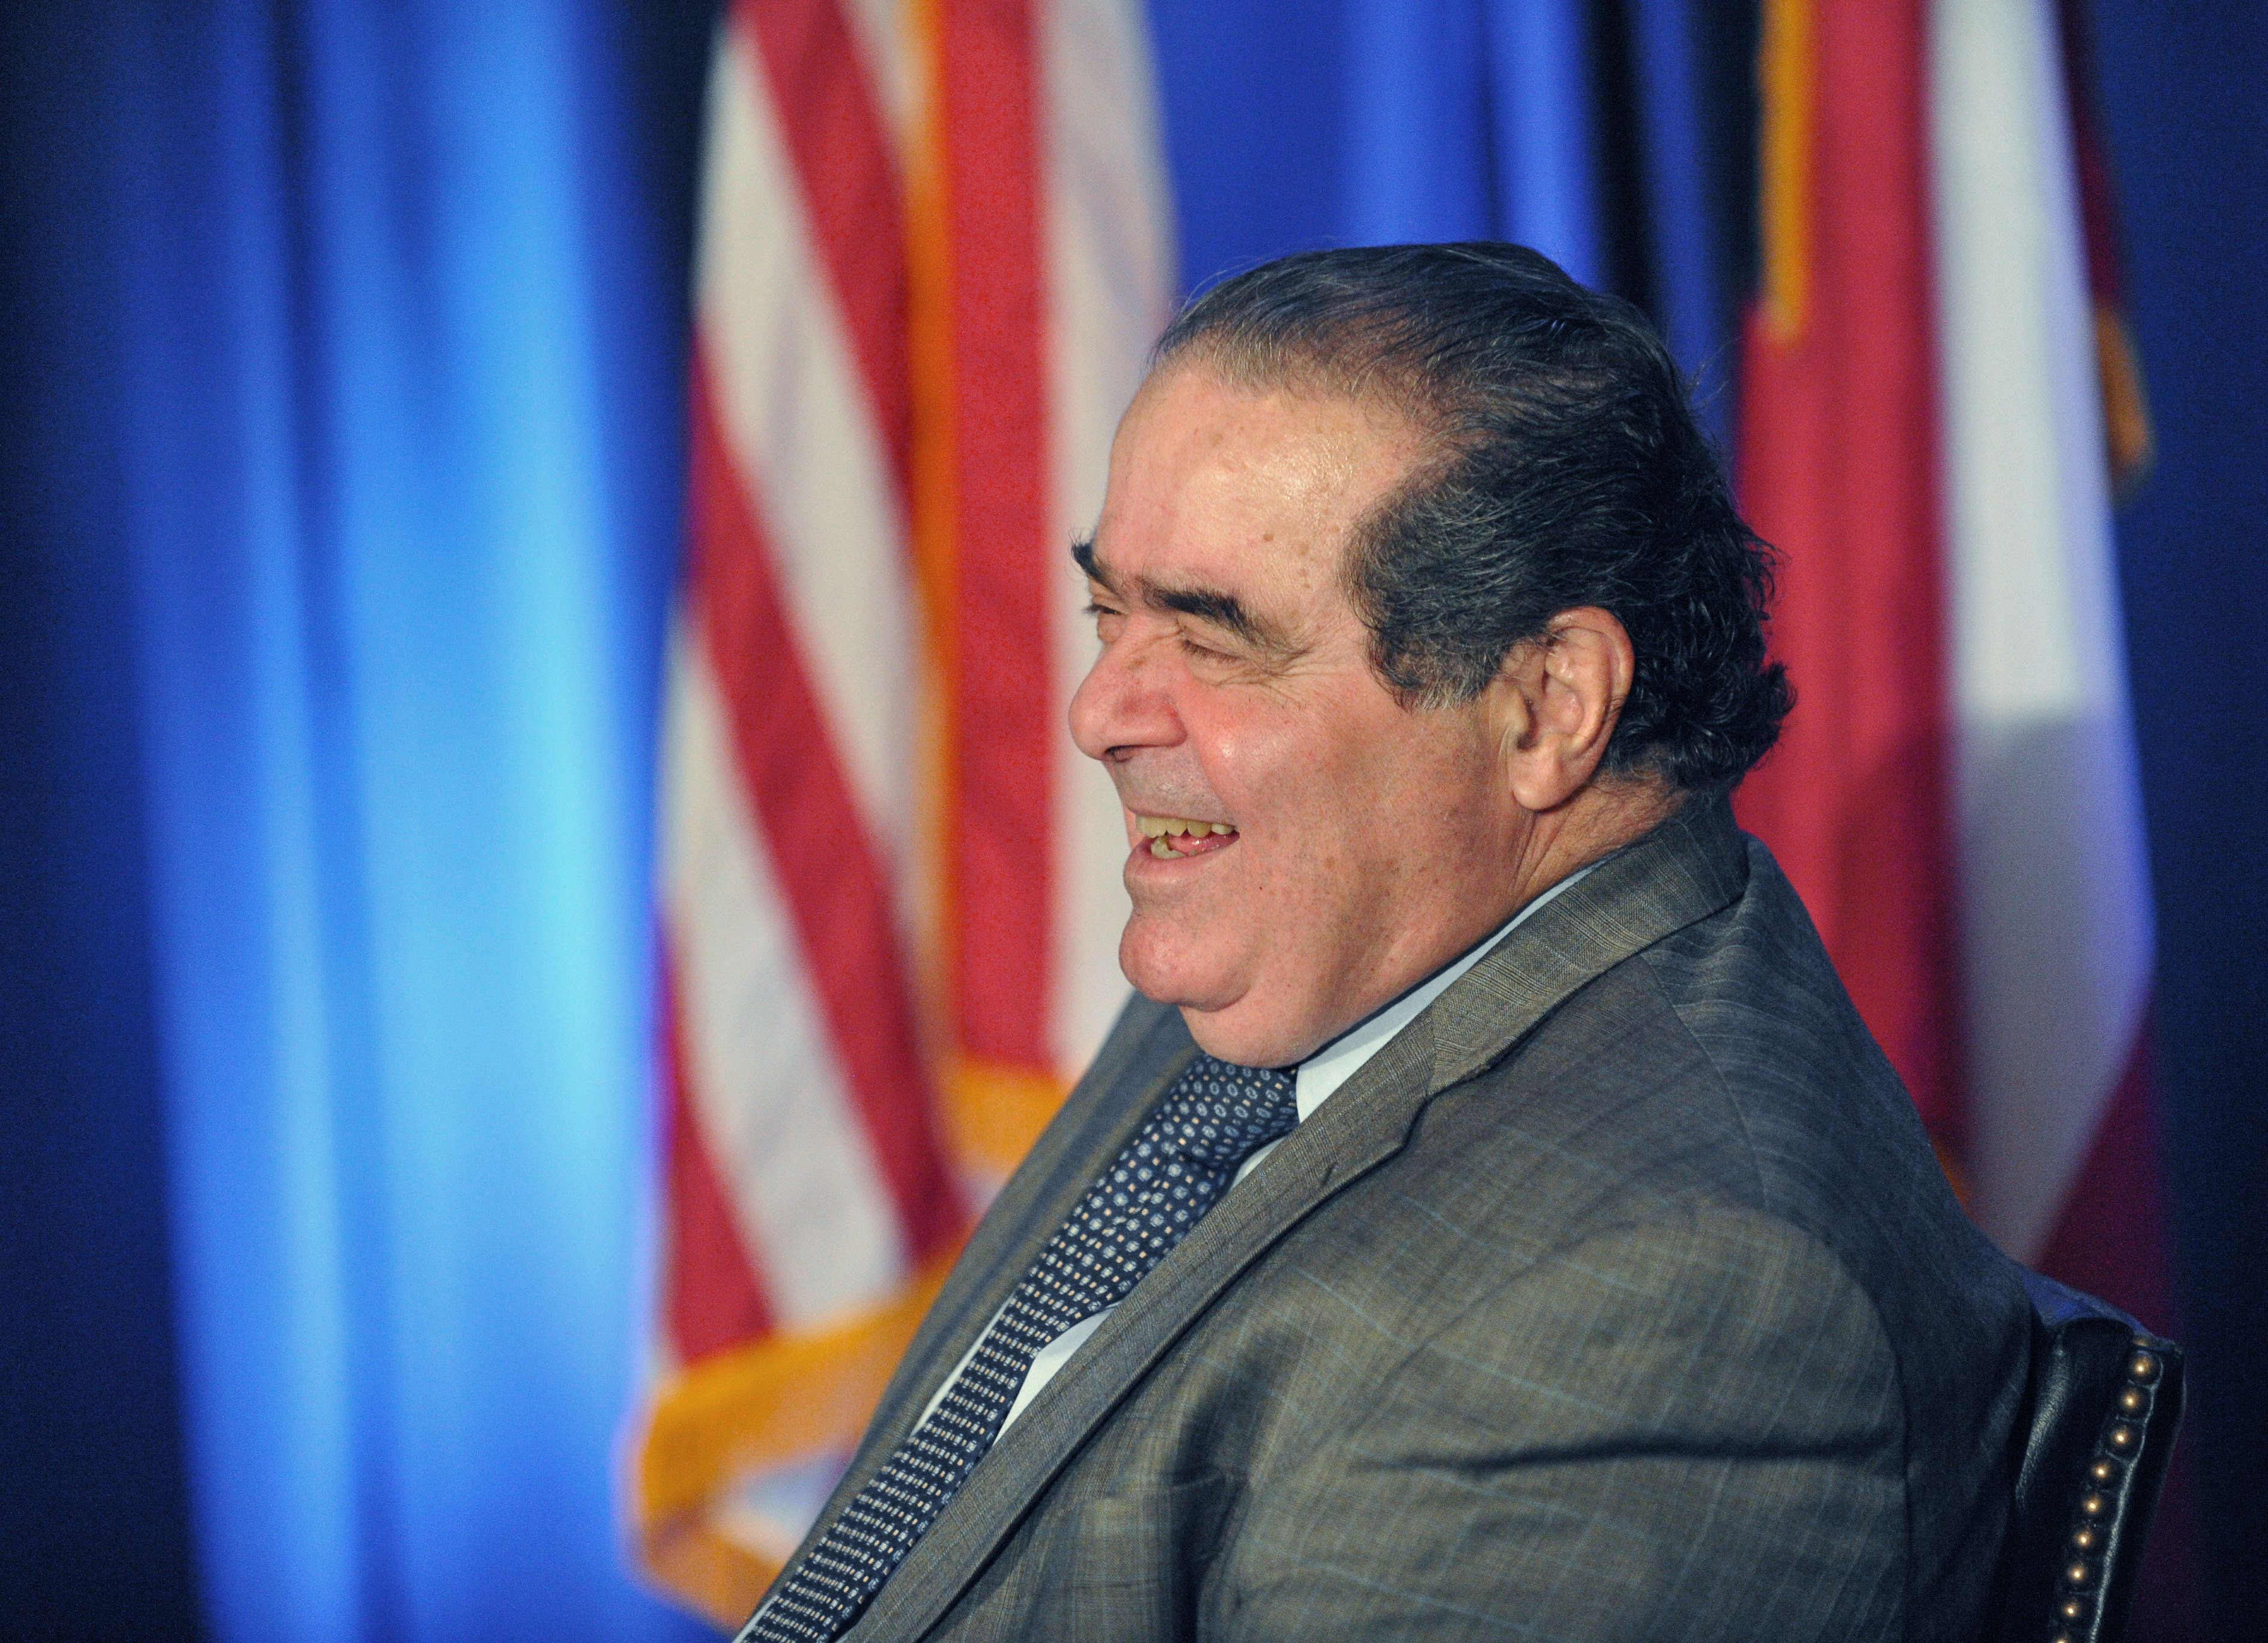 Some say Justice Antonin Scalia is irreplaceable. But is he really?